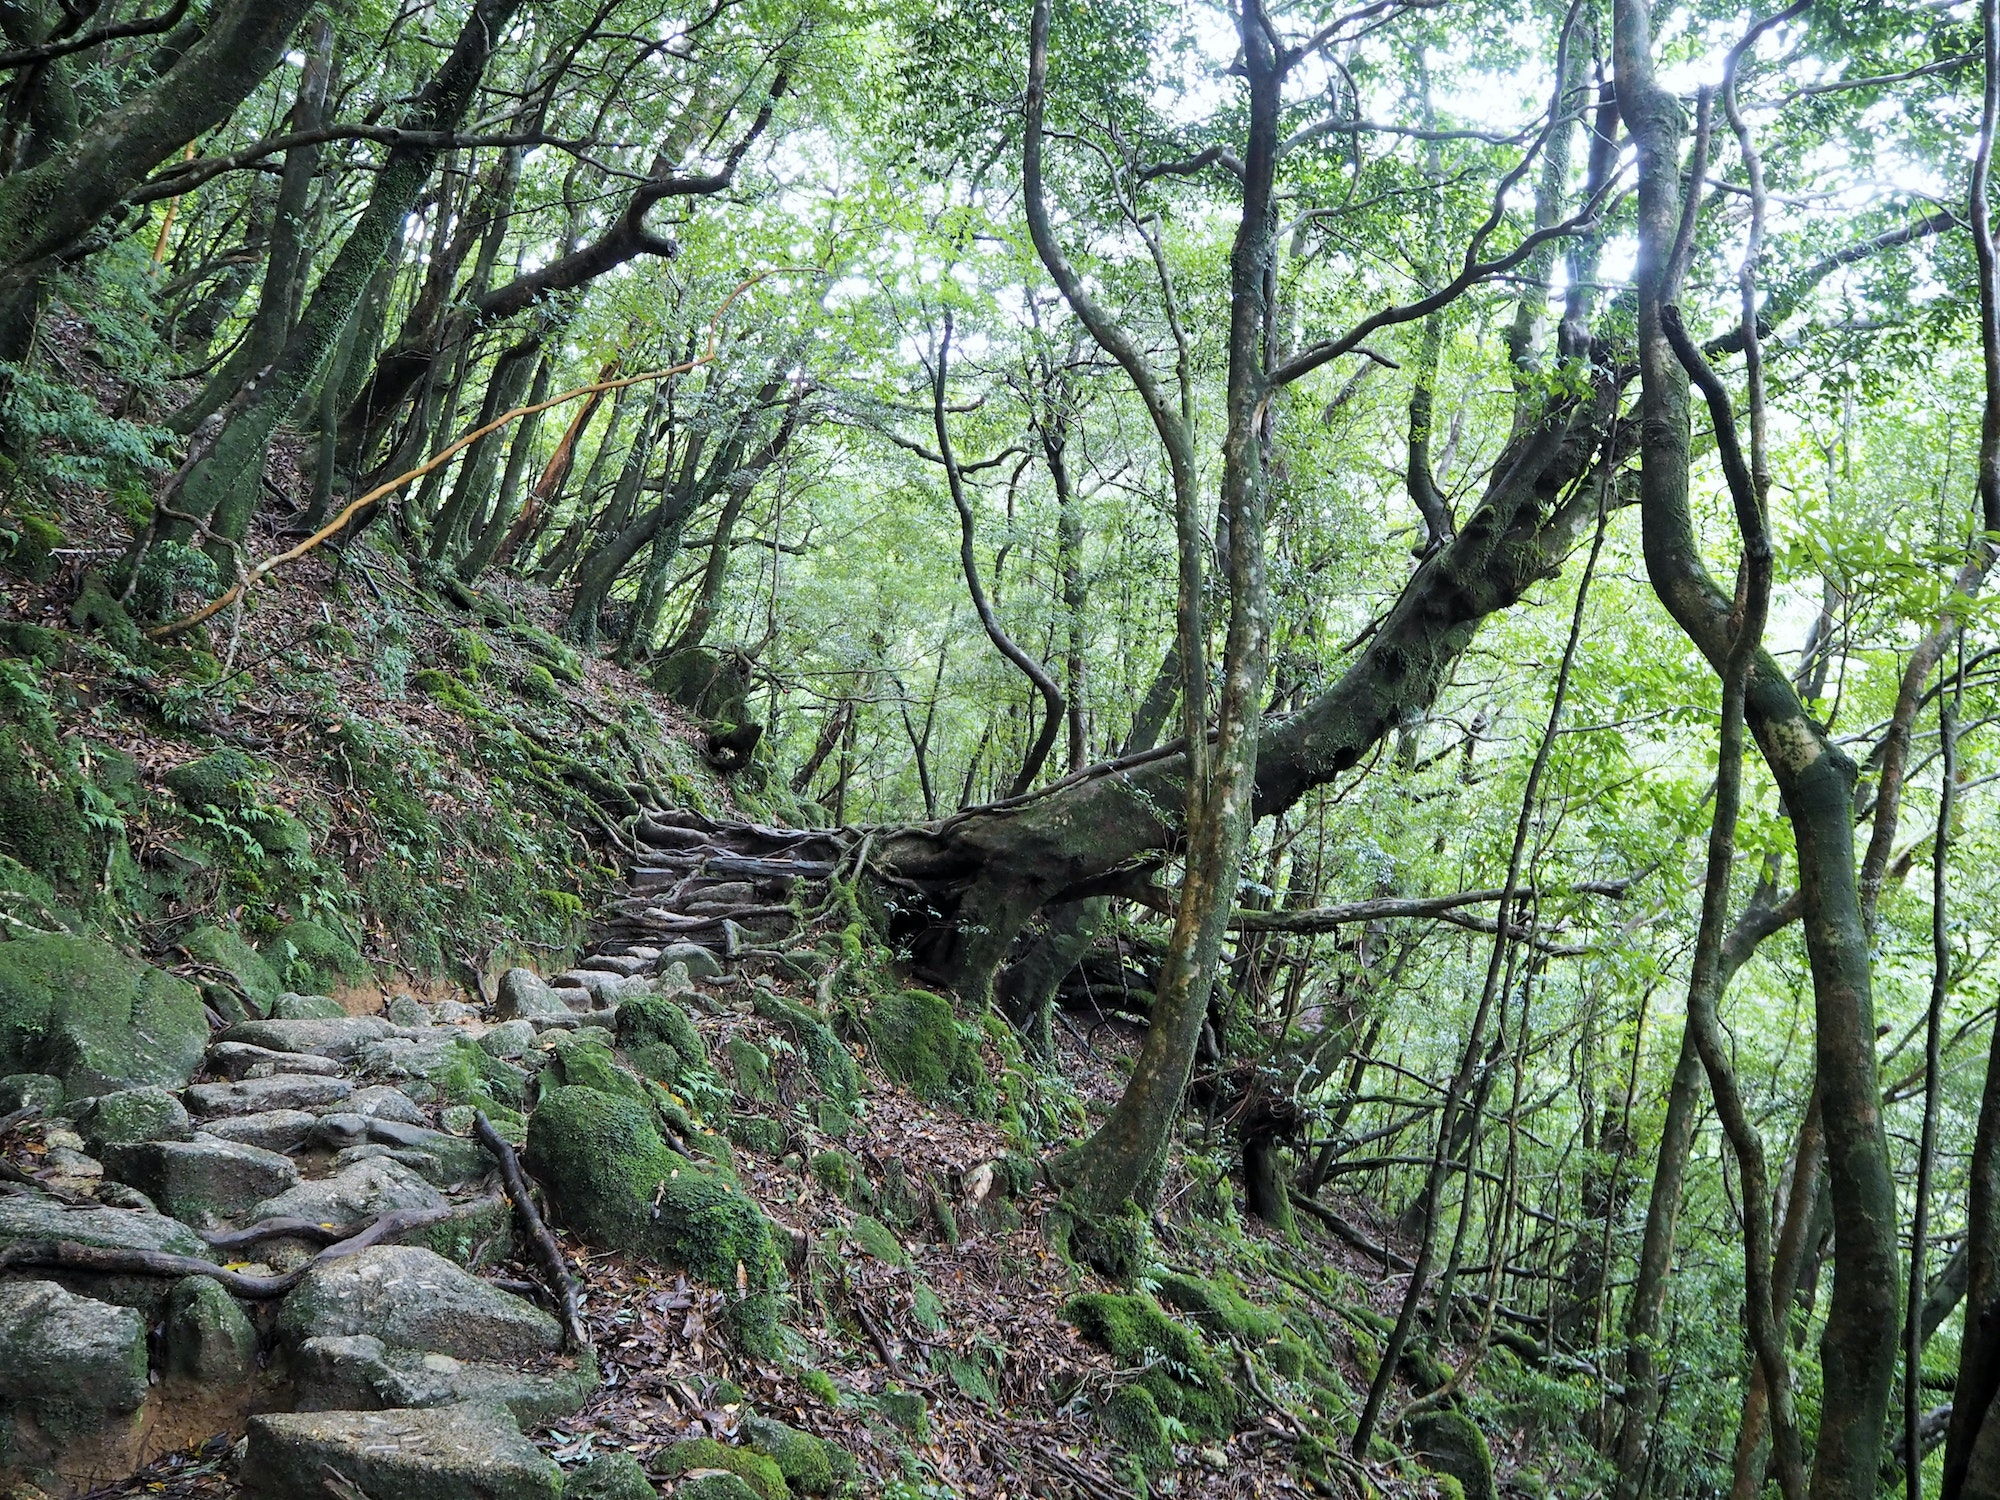 The Shiratani Unsuikyo Ravine offers a network of well-maintained hiking trails surrounded by ancient cedars.